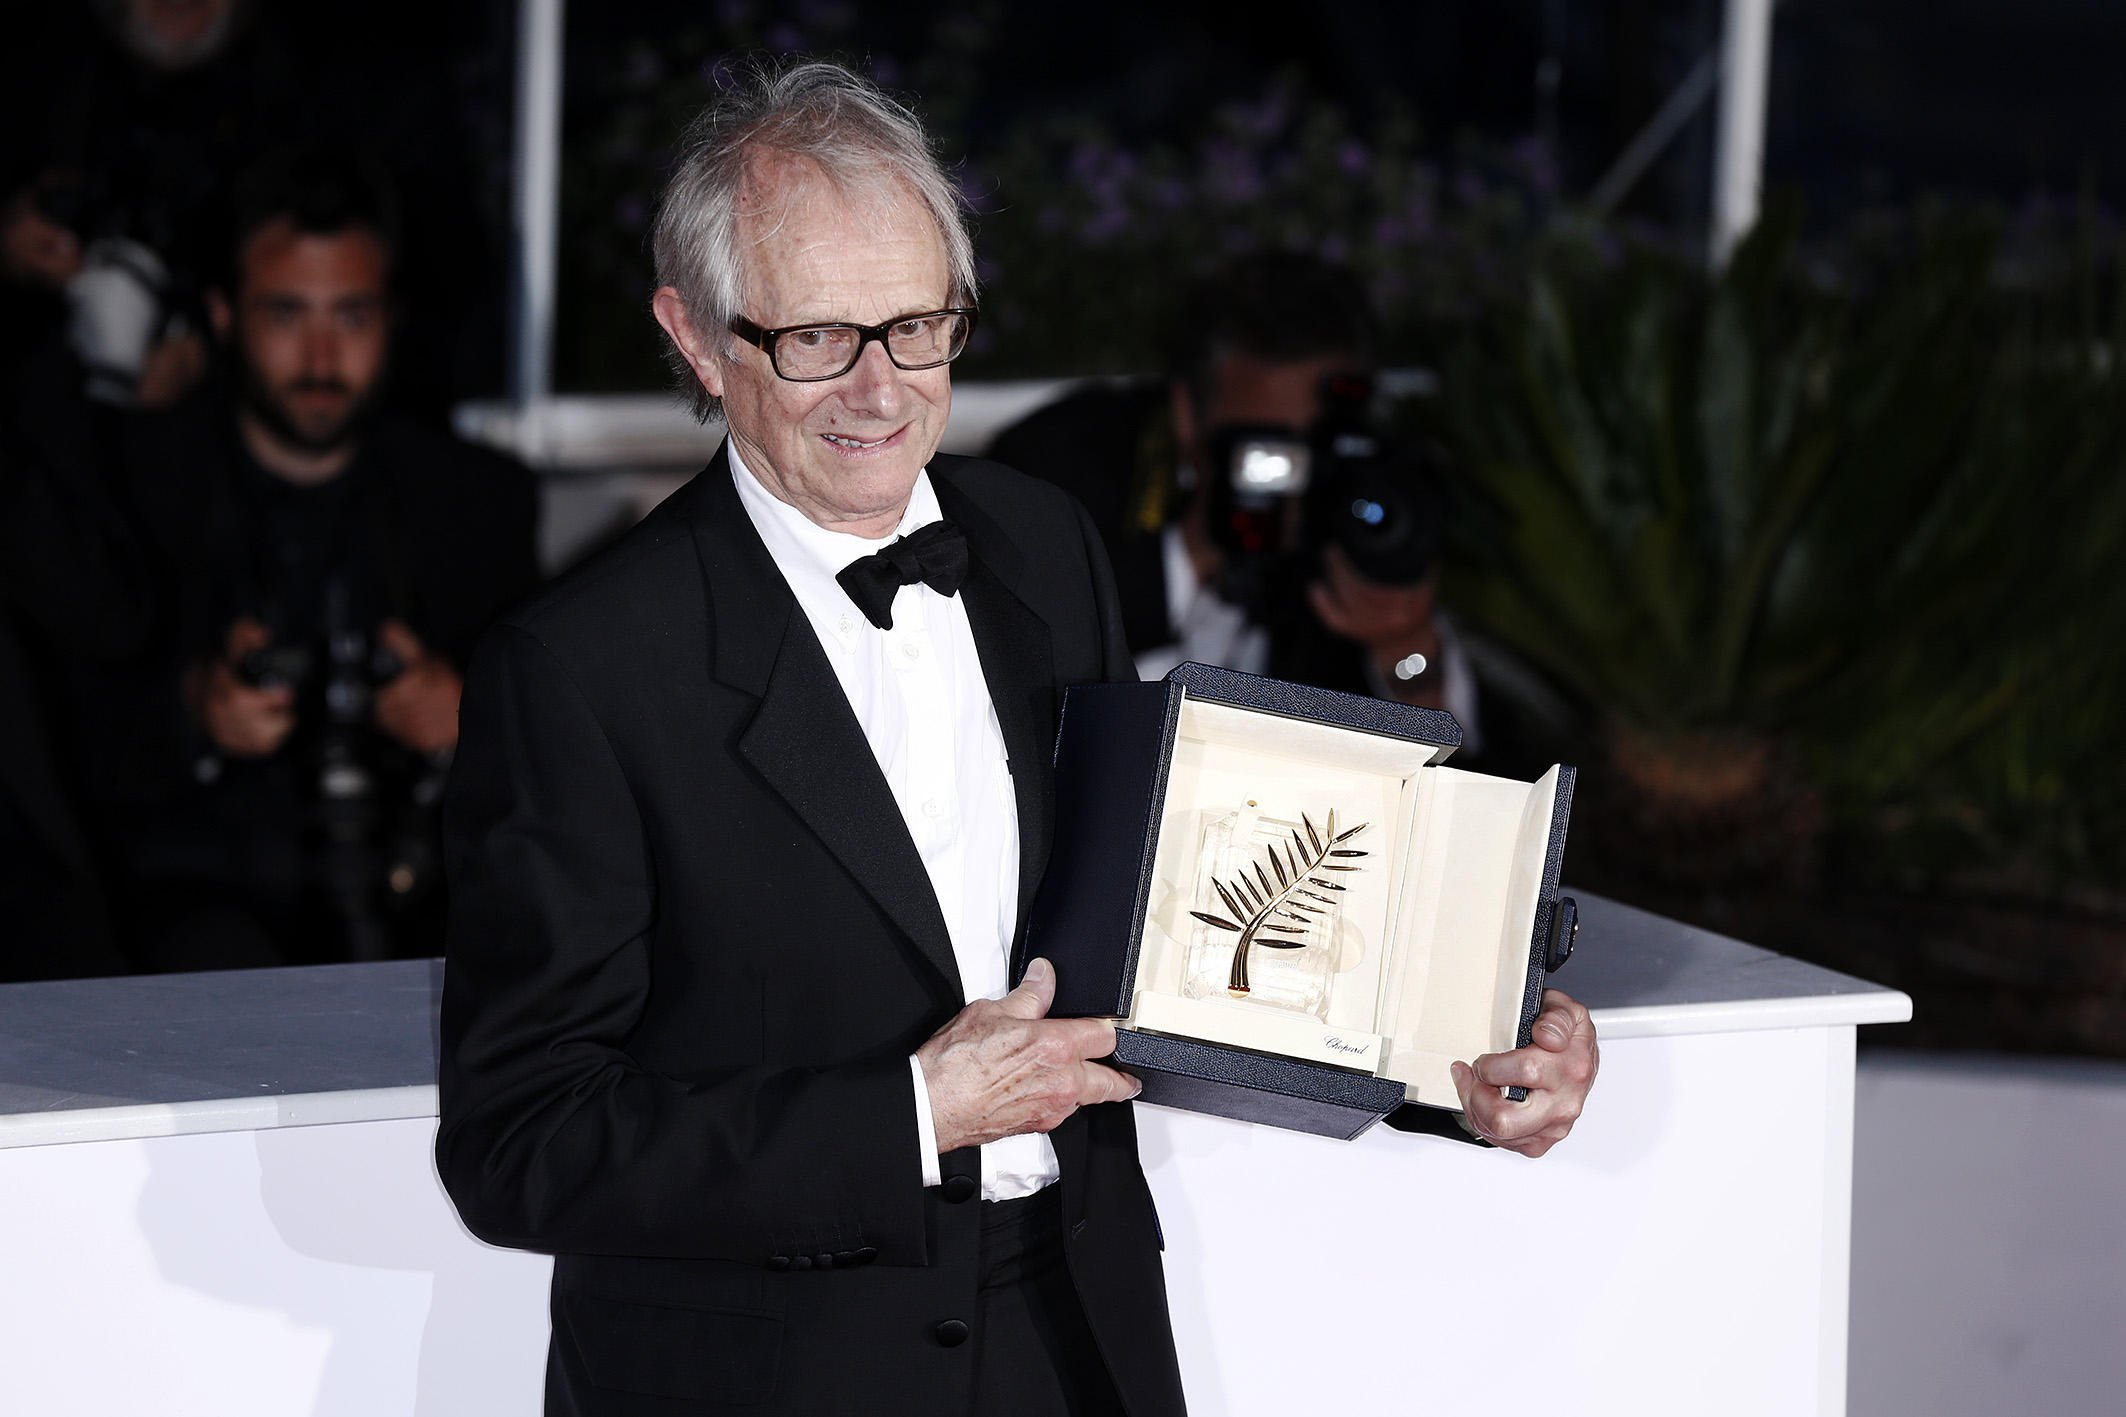 69th Cannes Film Festival - Award Winners - Photocall Featuring: Ken Loach Where: Cannes, France When: 22 May 2016 Credit: KIKA/WENN.com **Only available for publication in UK, Germany, Austria, Switzerland, USA**